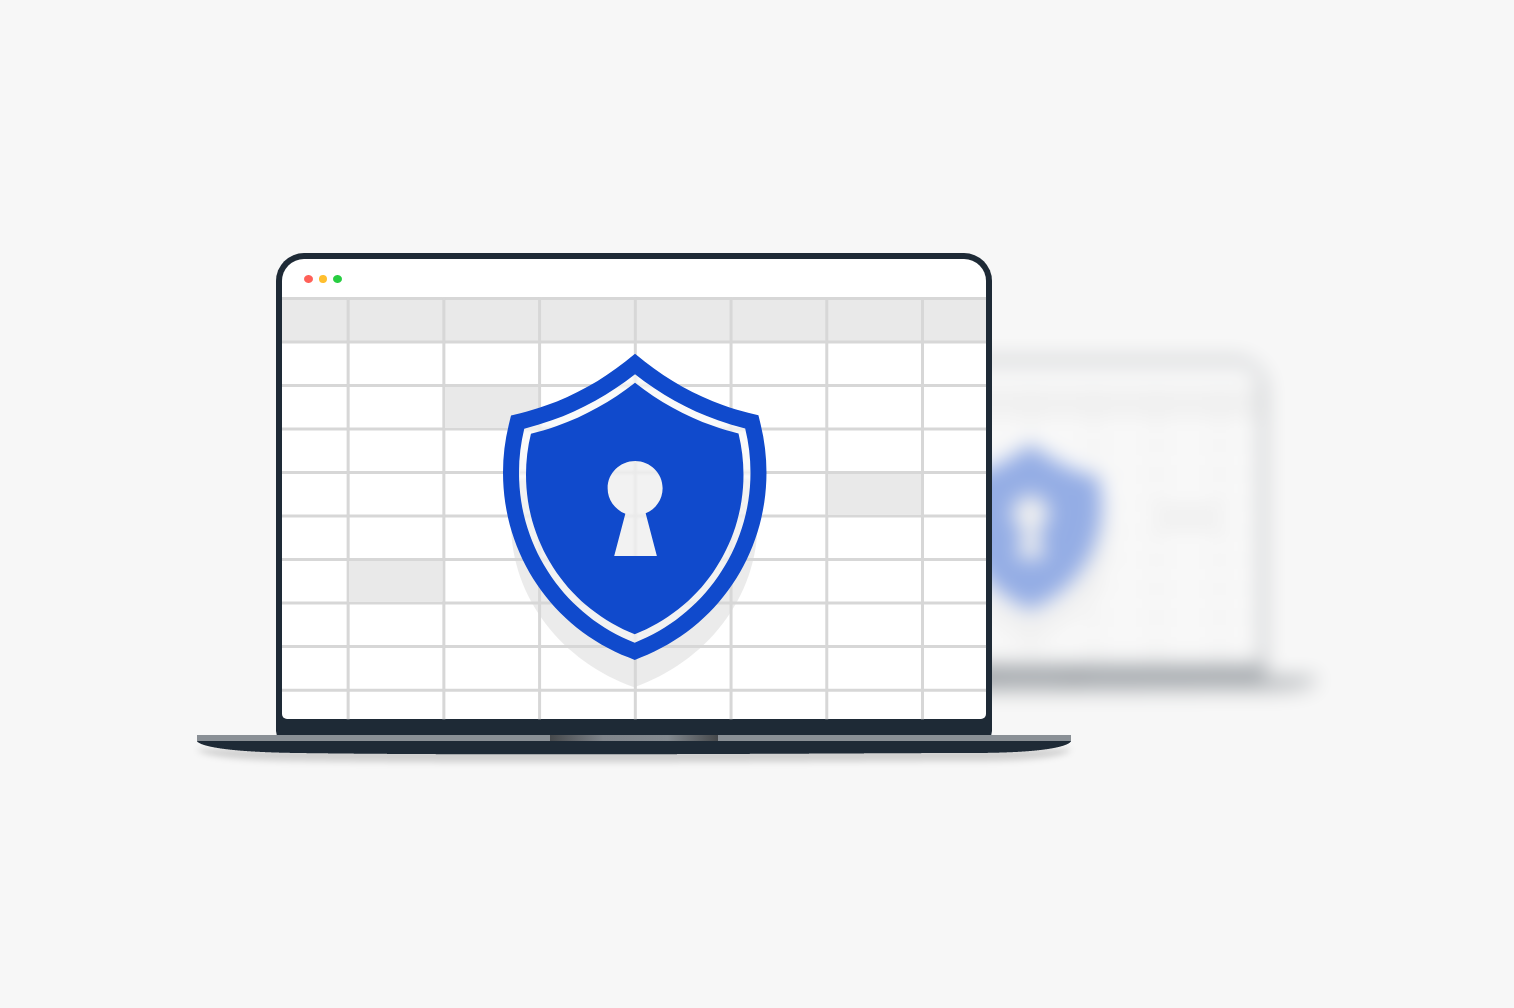 Handsontable XSS security flaw – what we've done to protect your data